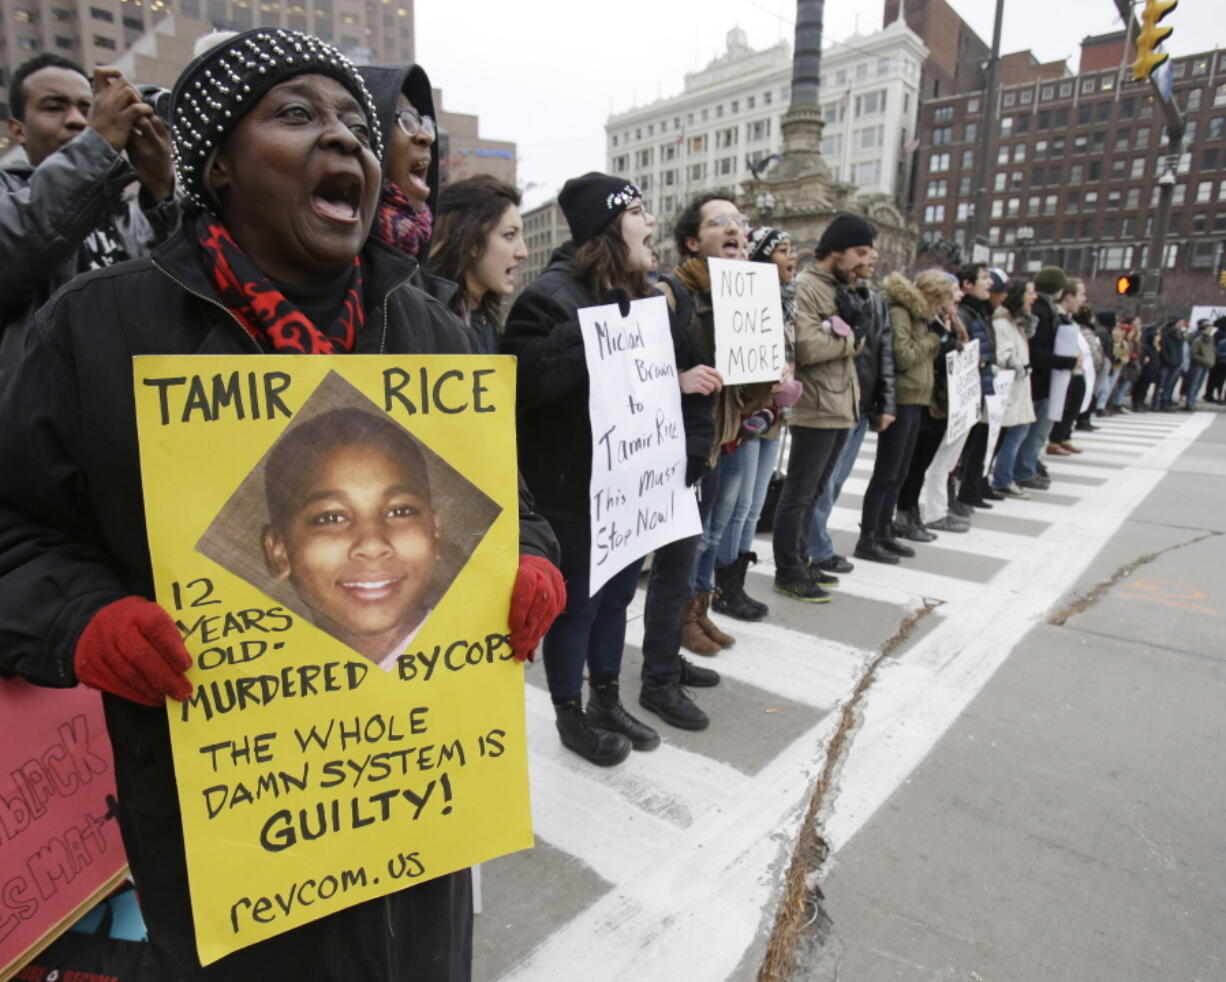 FILE - This Nov. 25, 2014, file photo, shows demonstrators blocking Public Square in Cleveland, during a protest over the police shooting of 12-year-old Tamir Rice. The family of 12-year-old Tamir Rice, who was shot and killed by Cleveland police in 2014, asked the Justice Department on Friday to reopen the case into the boy's death after it was closed in the waning weeks of the Trump administration.